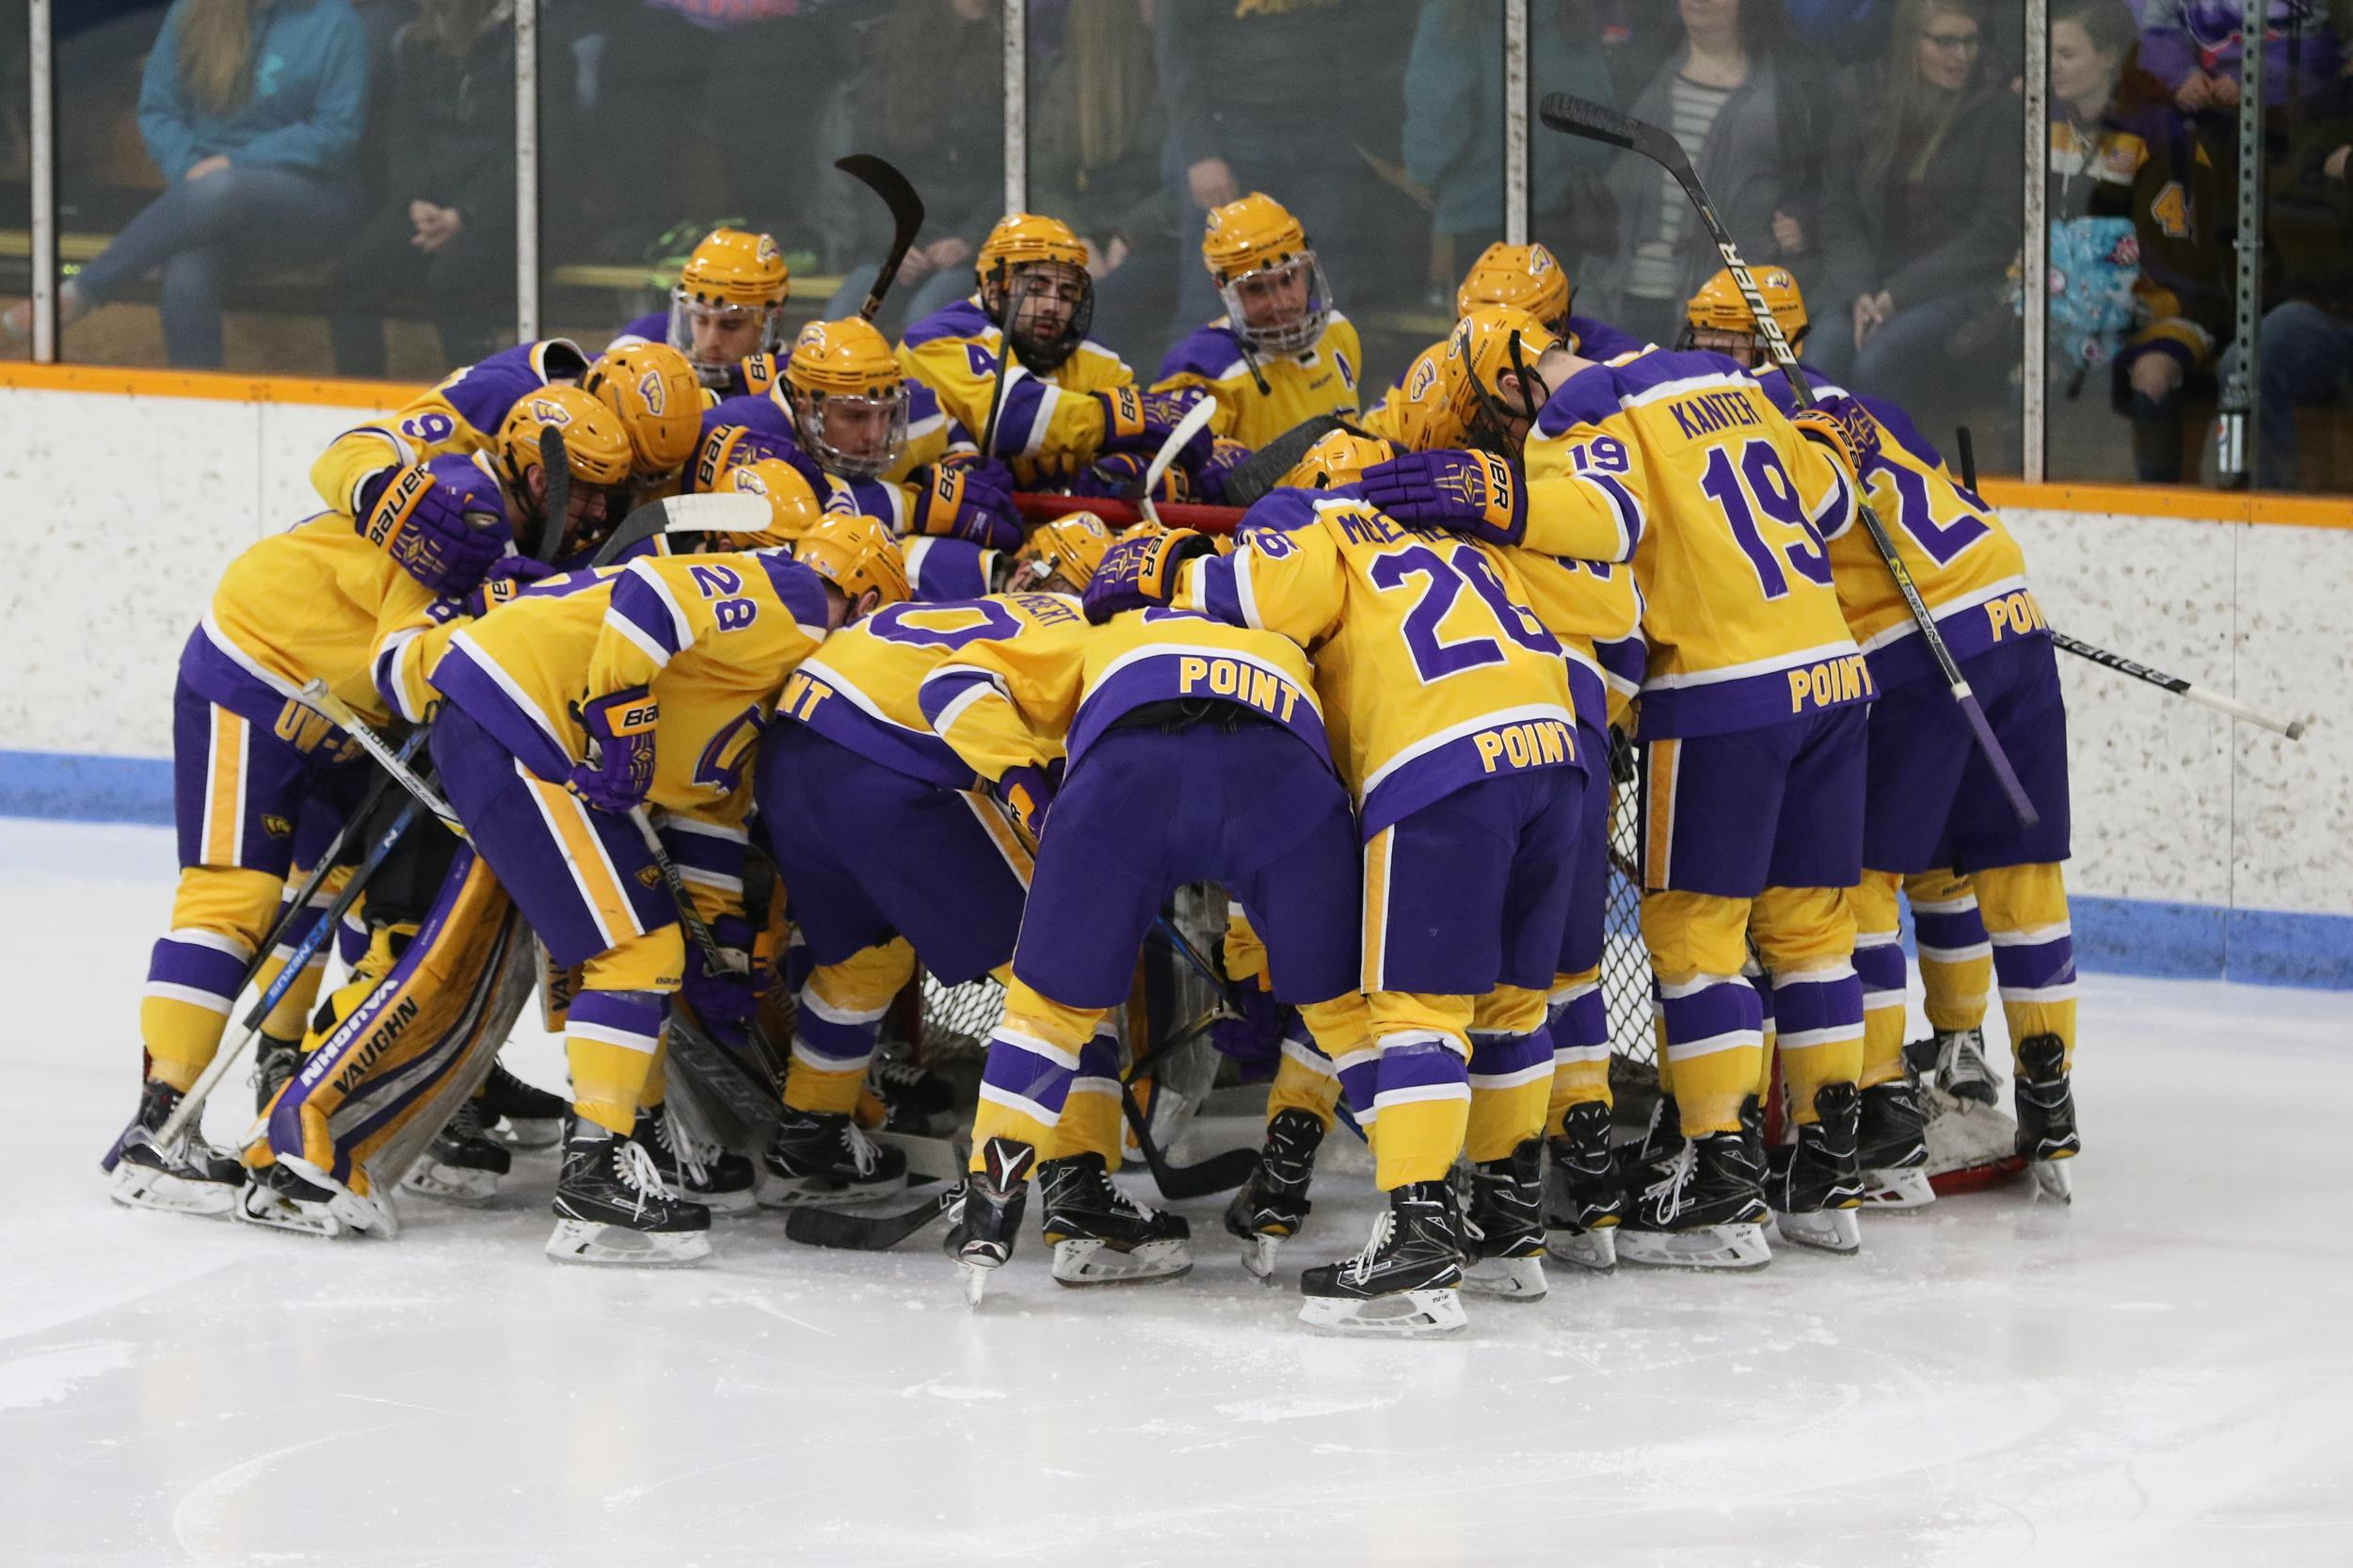 Pointers Set To Face Salve Regina In National Semifinal University